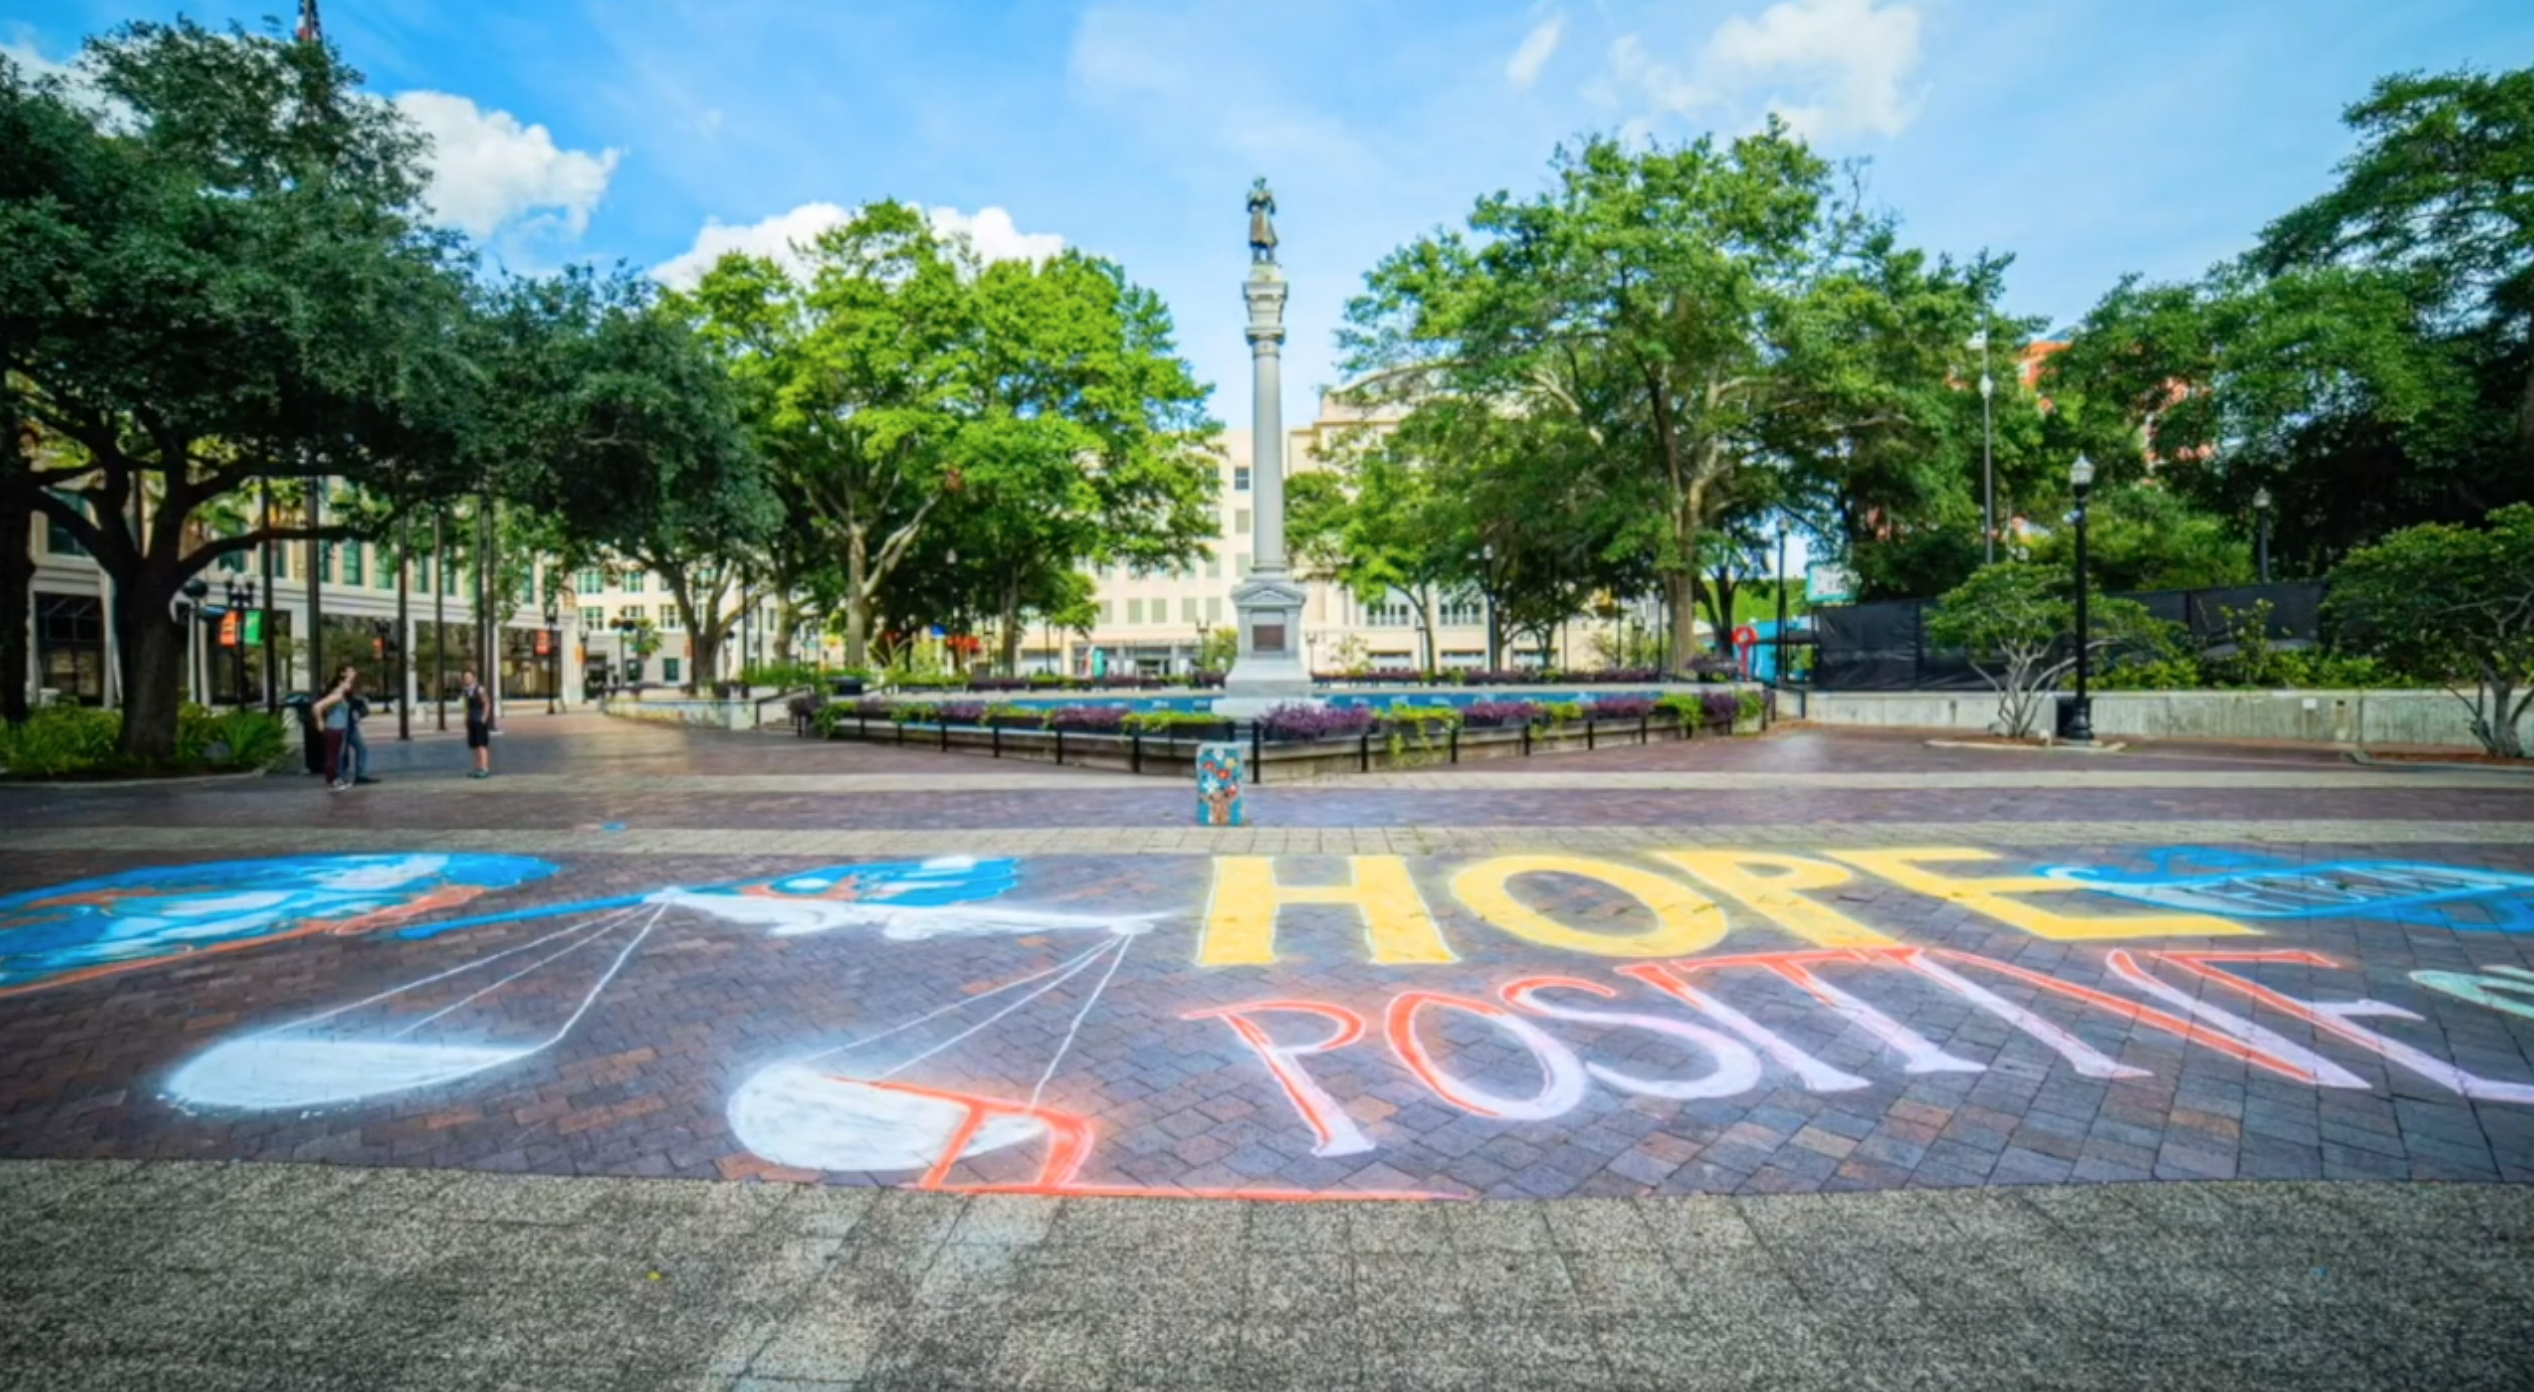 Chalk mural with a message representing the imbalance of justice in the United States created by Heartspace Art at James Weldon Johnson Park in Jacksonville, Florida.